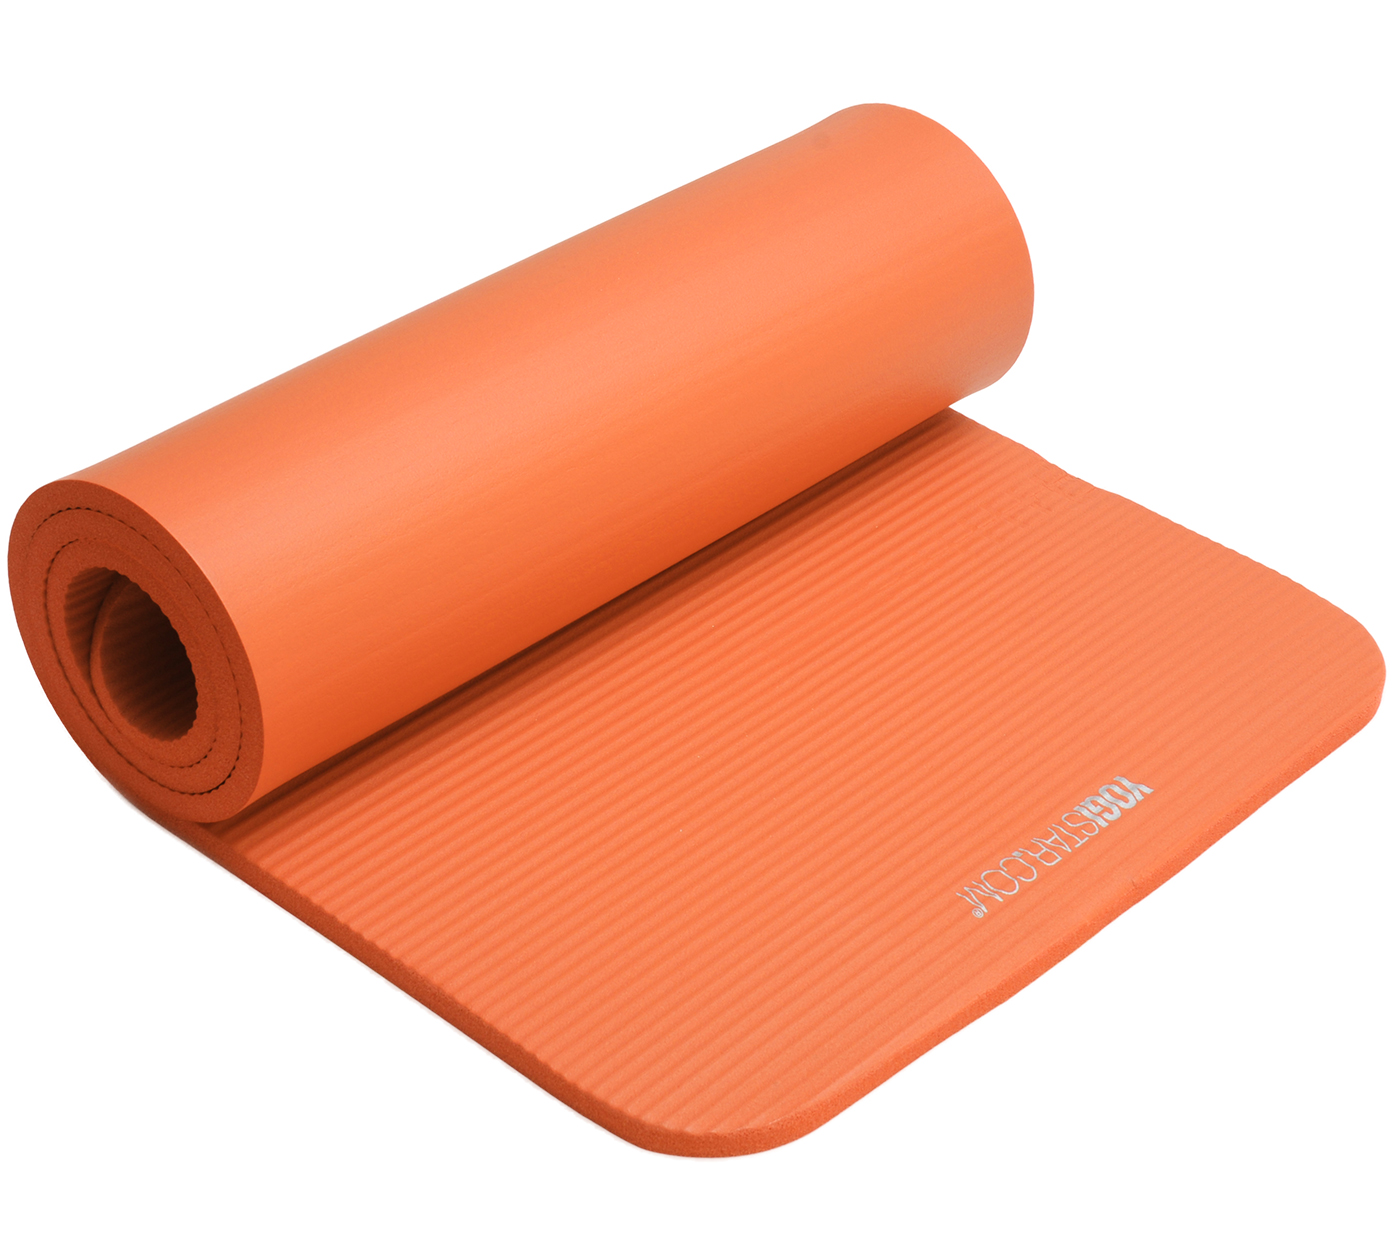 Fitness Mat Gym 15 Mm Buy Online At Yogishop Yoga